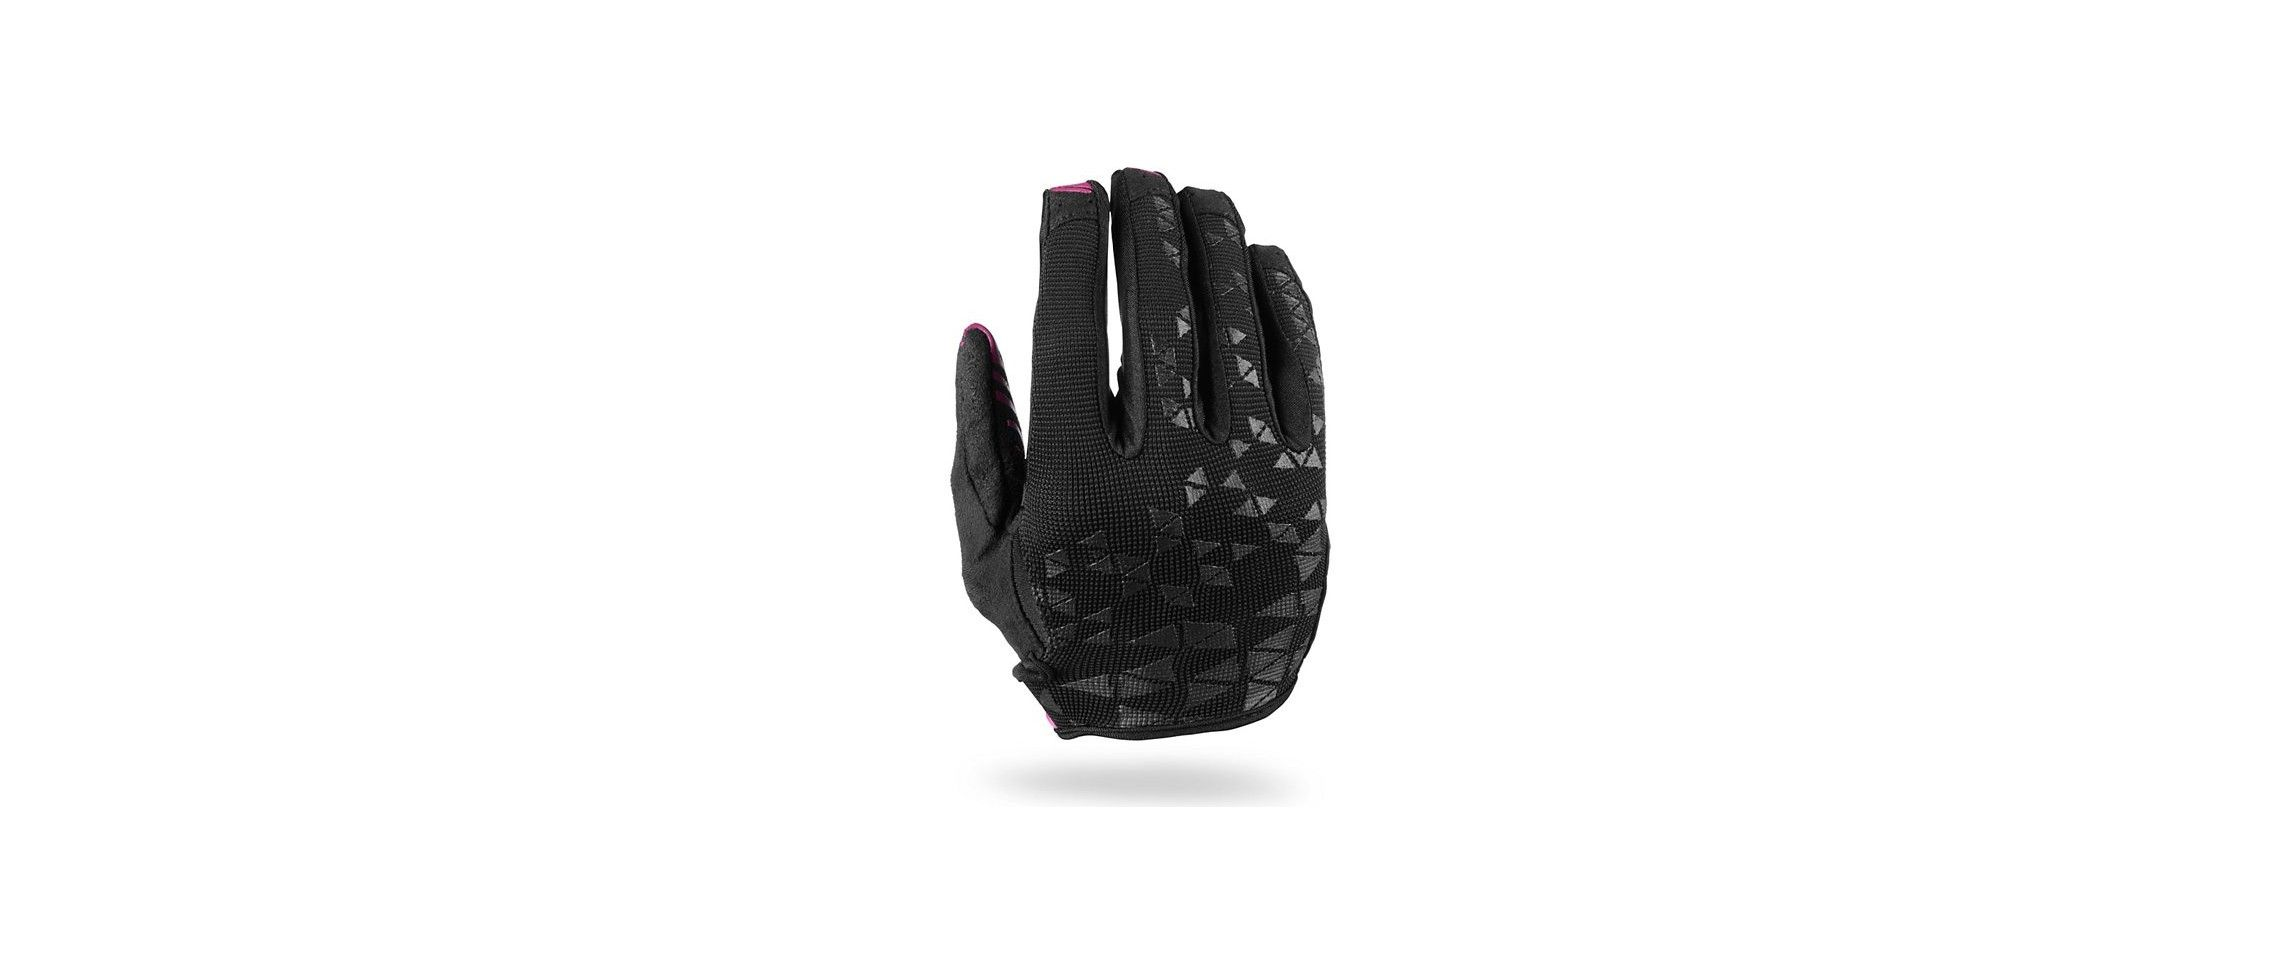 Lodown Guantes LF Specialized Mujer Body Geometry Negro/Rosa 1 IBKBike.es